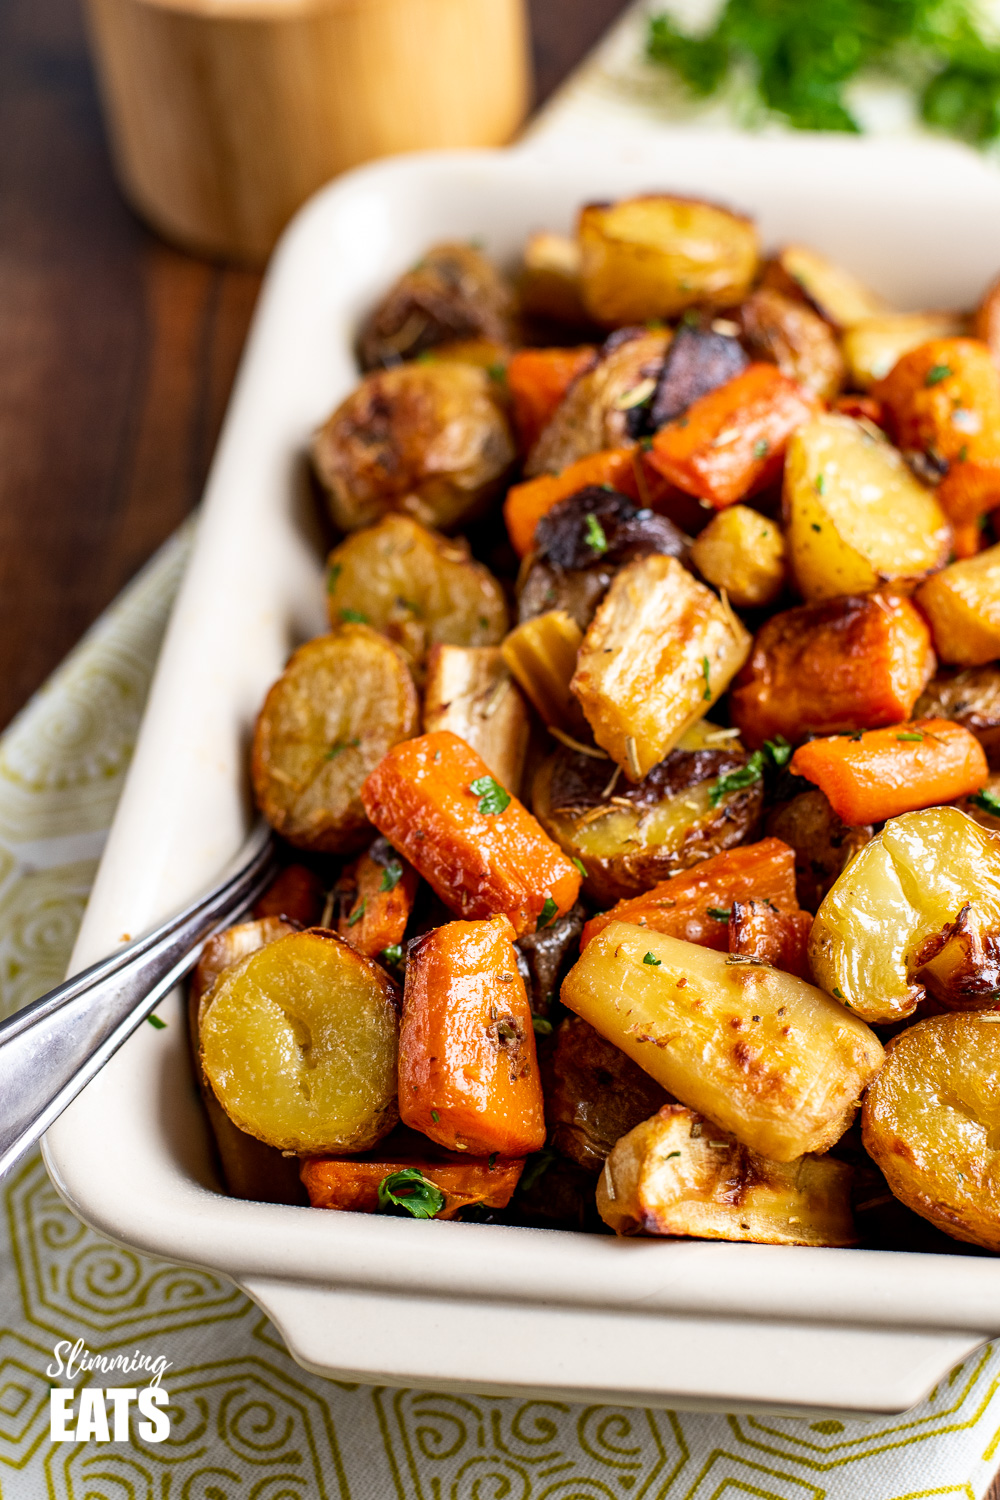 Rosemary Roasted Potatoes, Parsnips, Carrots and Onion in dish with metal spoon